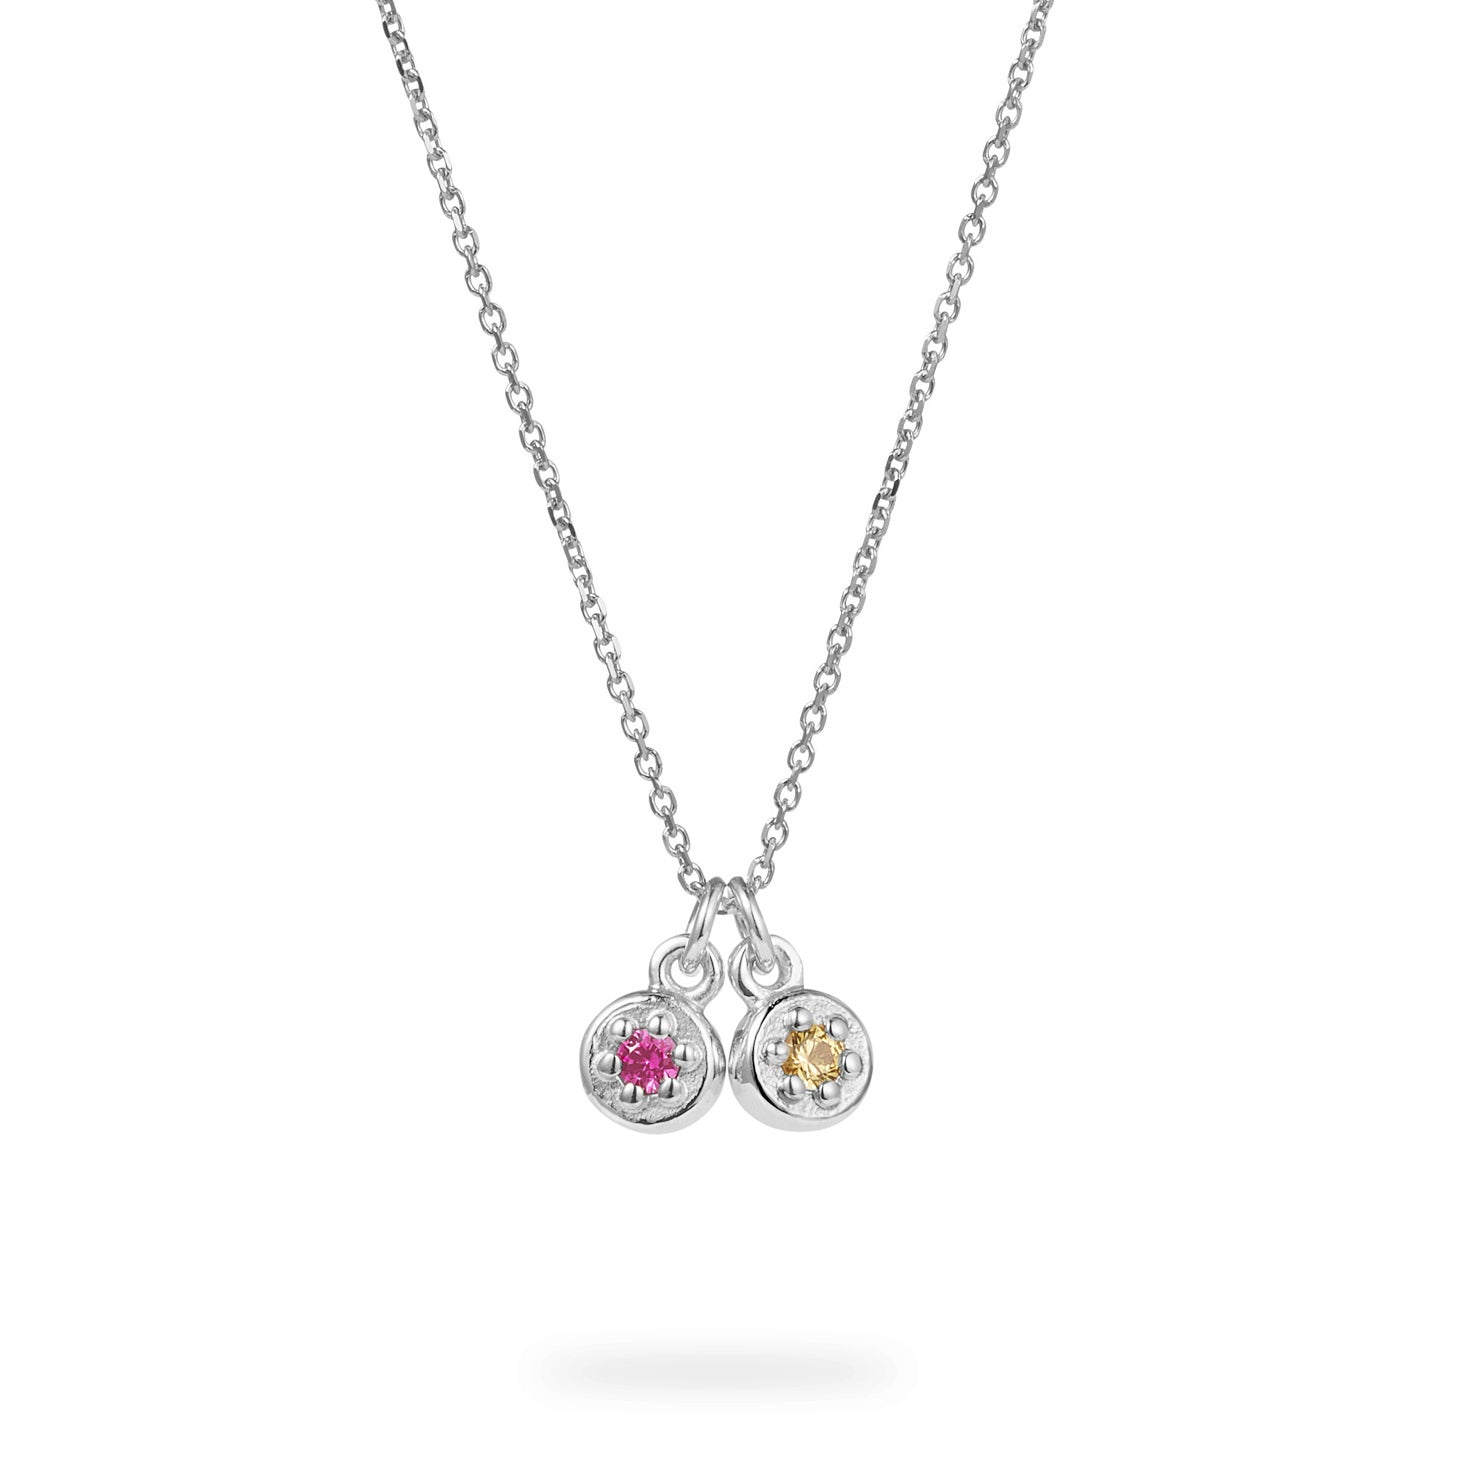 Luke Rose Jewellery silver pink and yellow sapphire necklace